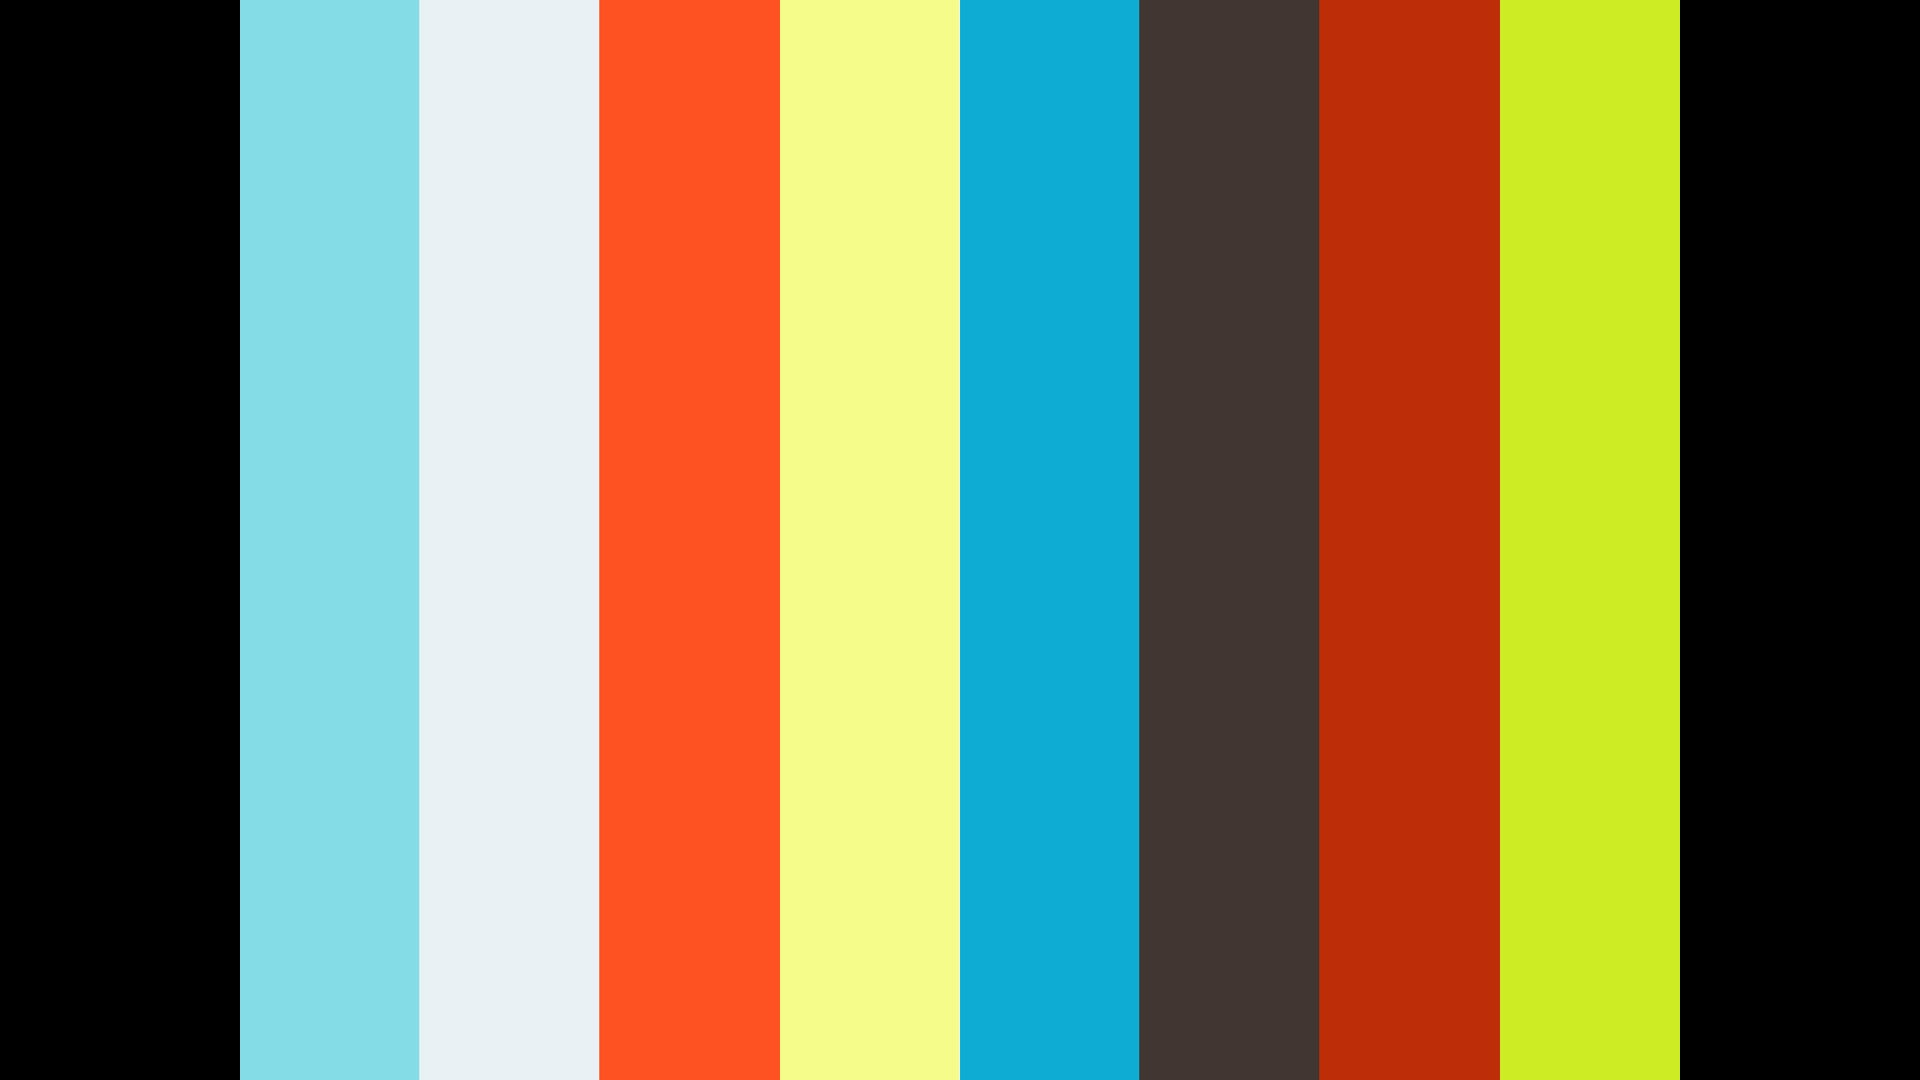 Ethiopianism.tv # ንትርክ crosstalk - Ethiopia What Future _Oromo Elites  27  Sep  2019.25